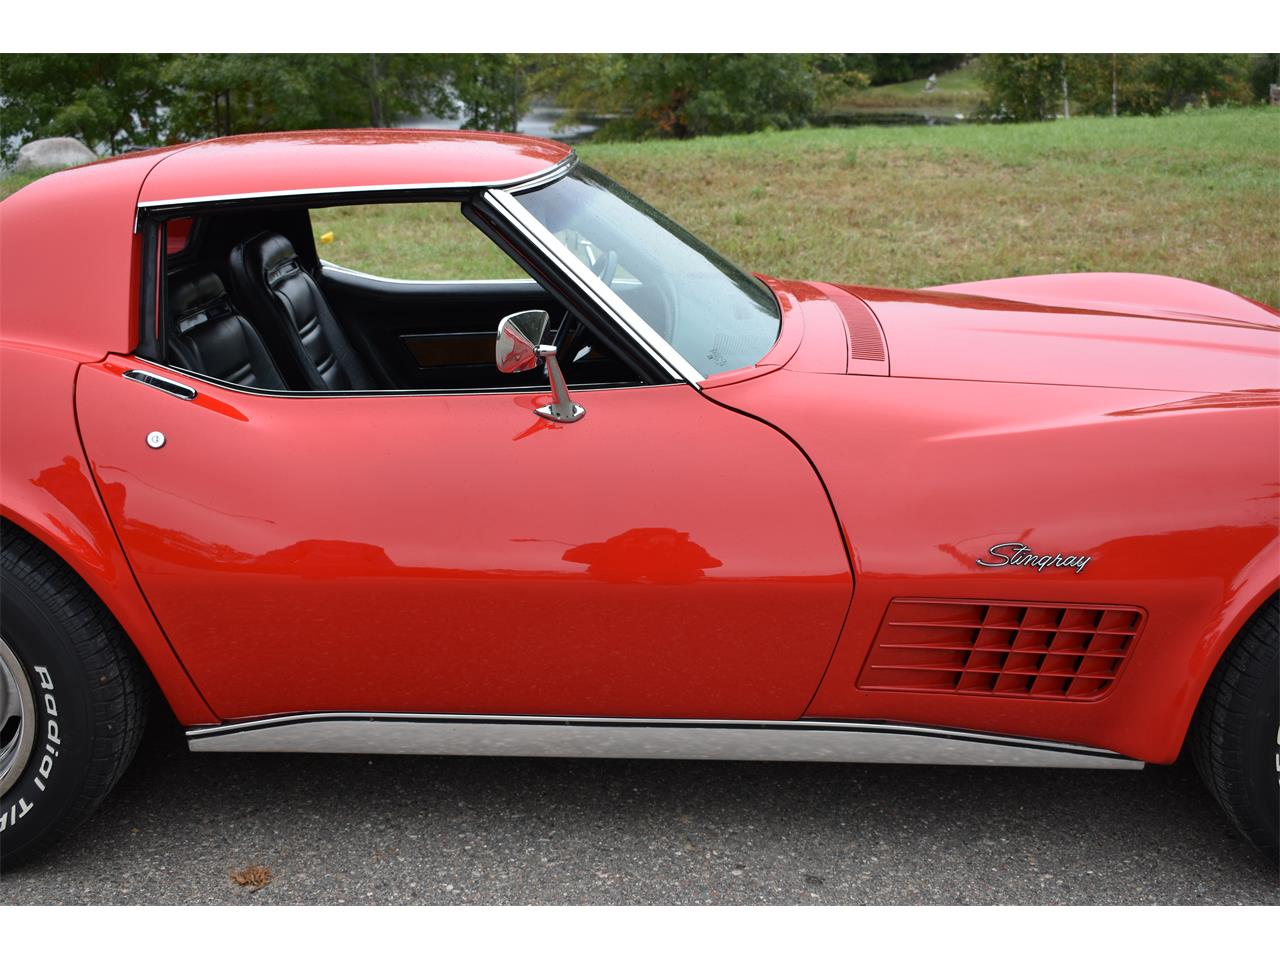 Large Picture of 1972 Chevrolet Corvette Offered by a Private Seller - OMCE